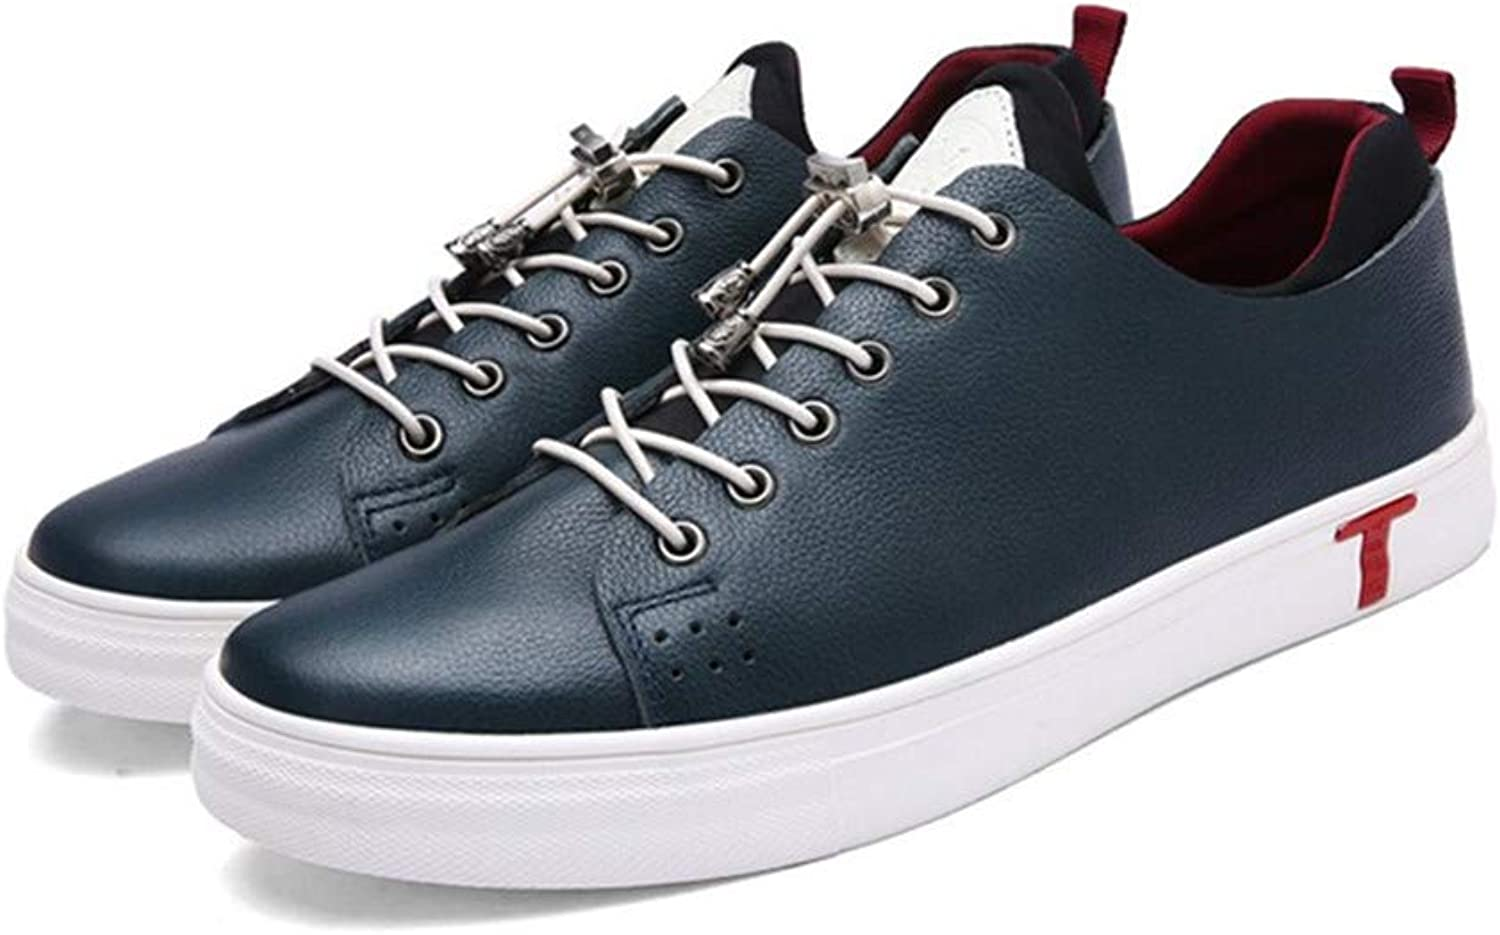 Casual Men's shoes Leather Size 24.0cm to 27.0cm bluee All Seasons Wear Board shoes Leisure